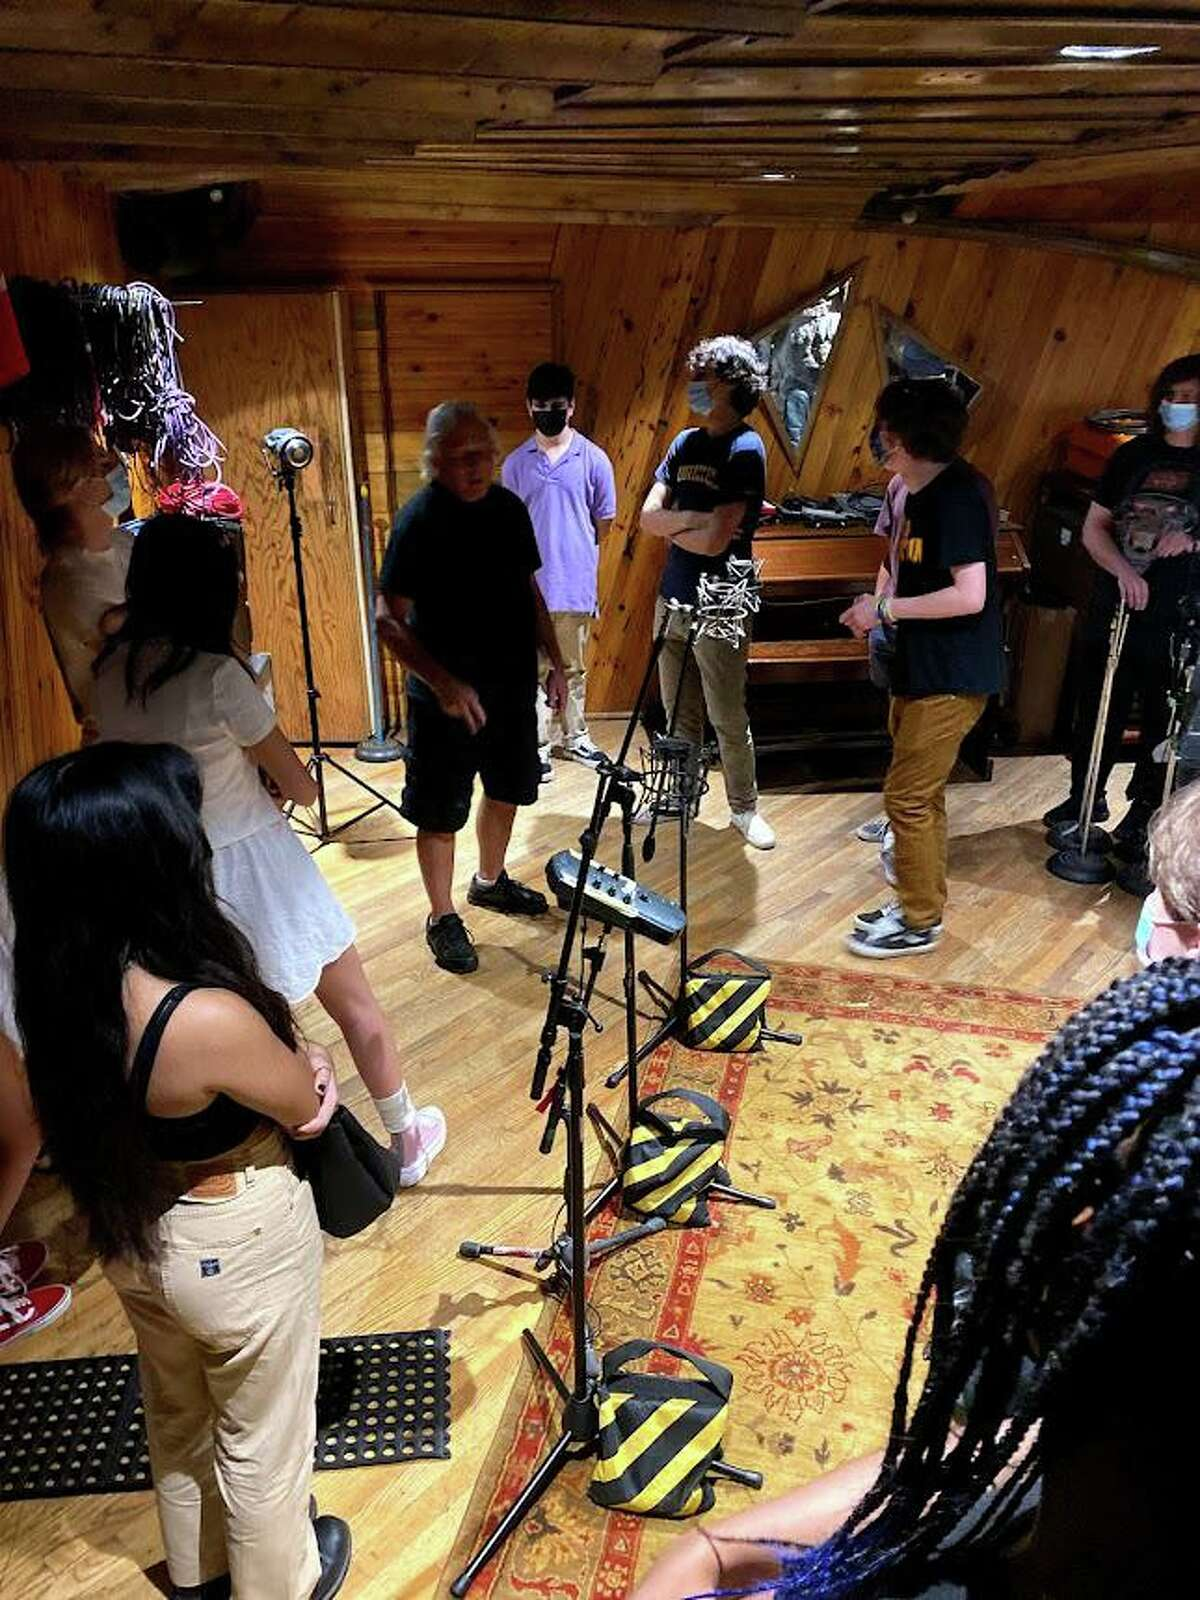 Students from the New Canaan School of Rock recently participated in the AllStars 2021 music program which took place at Carriage House Studios in Stamford.  The team recorded seven songs, including an original song written by their songwriter.